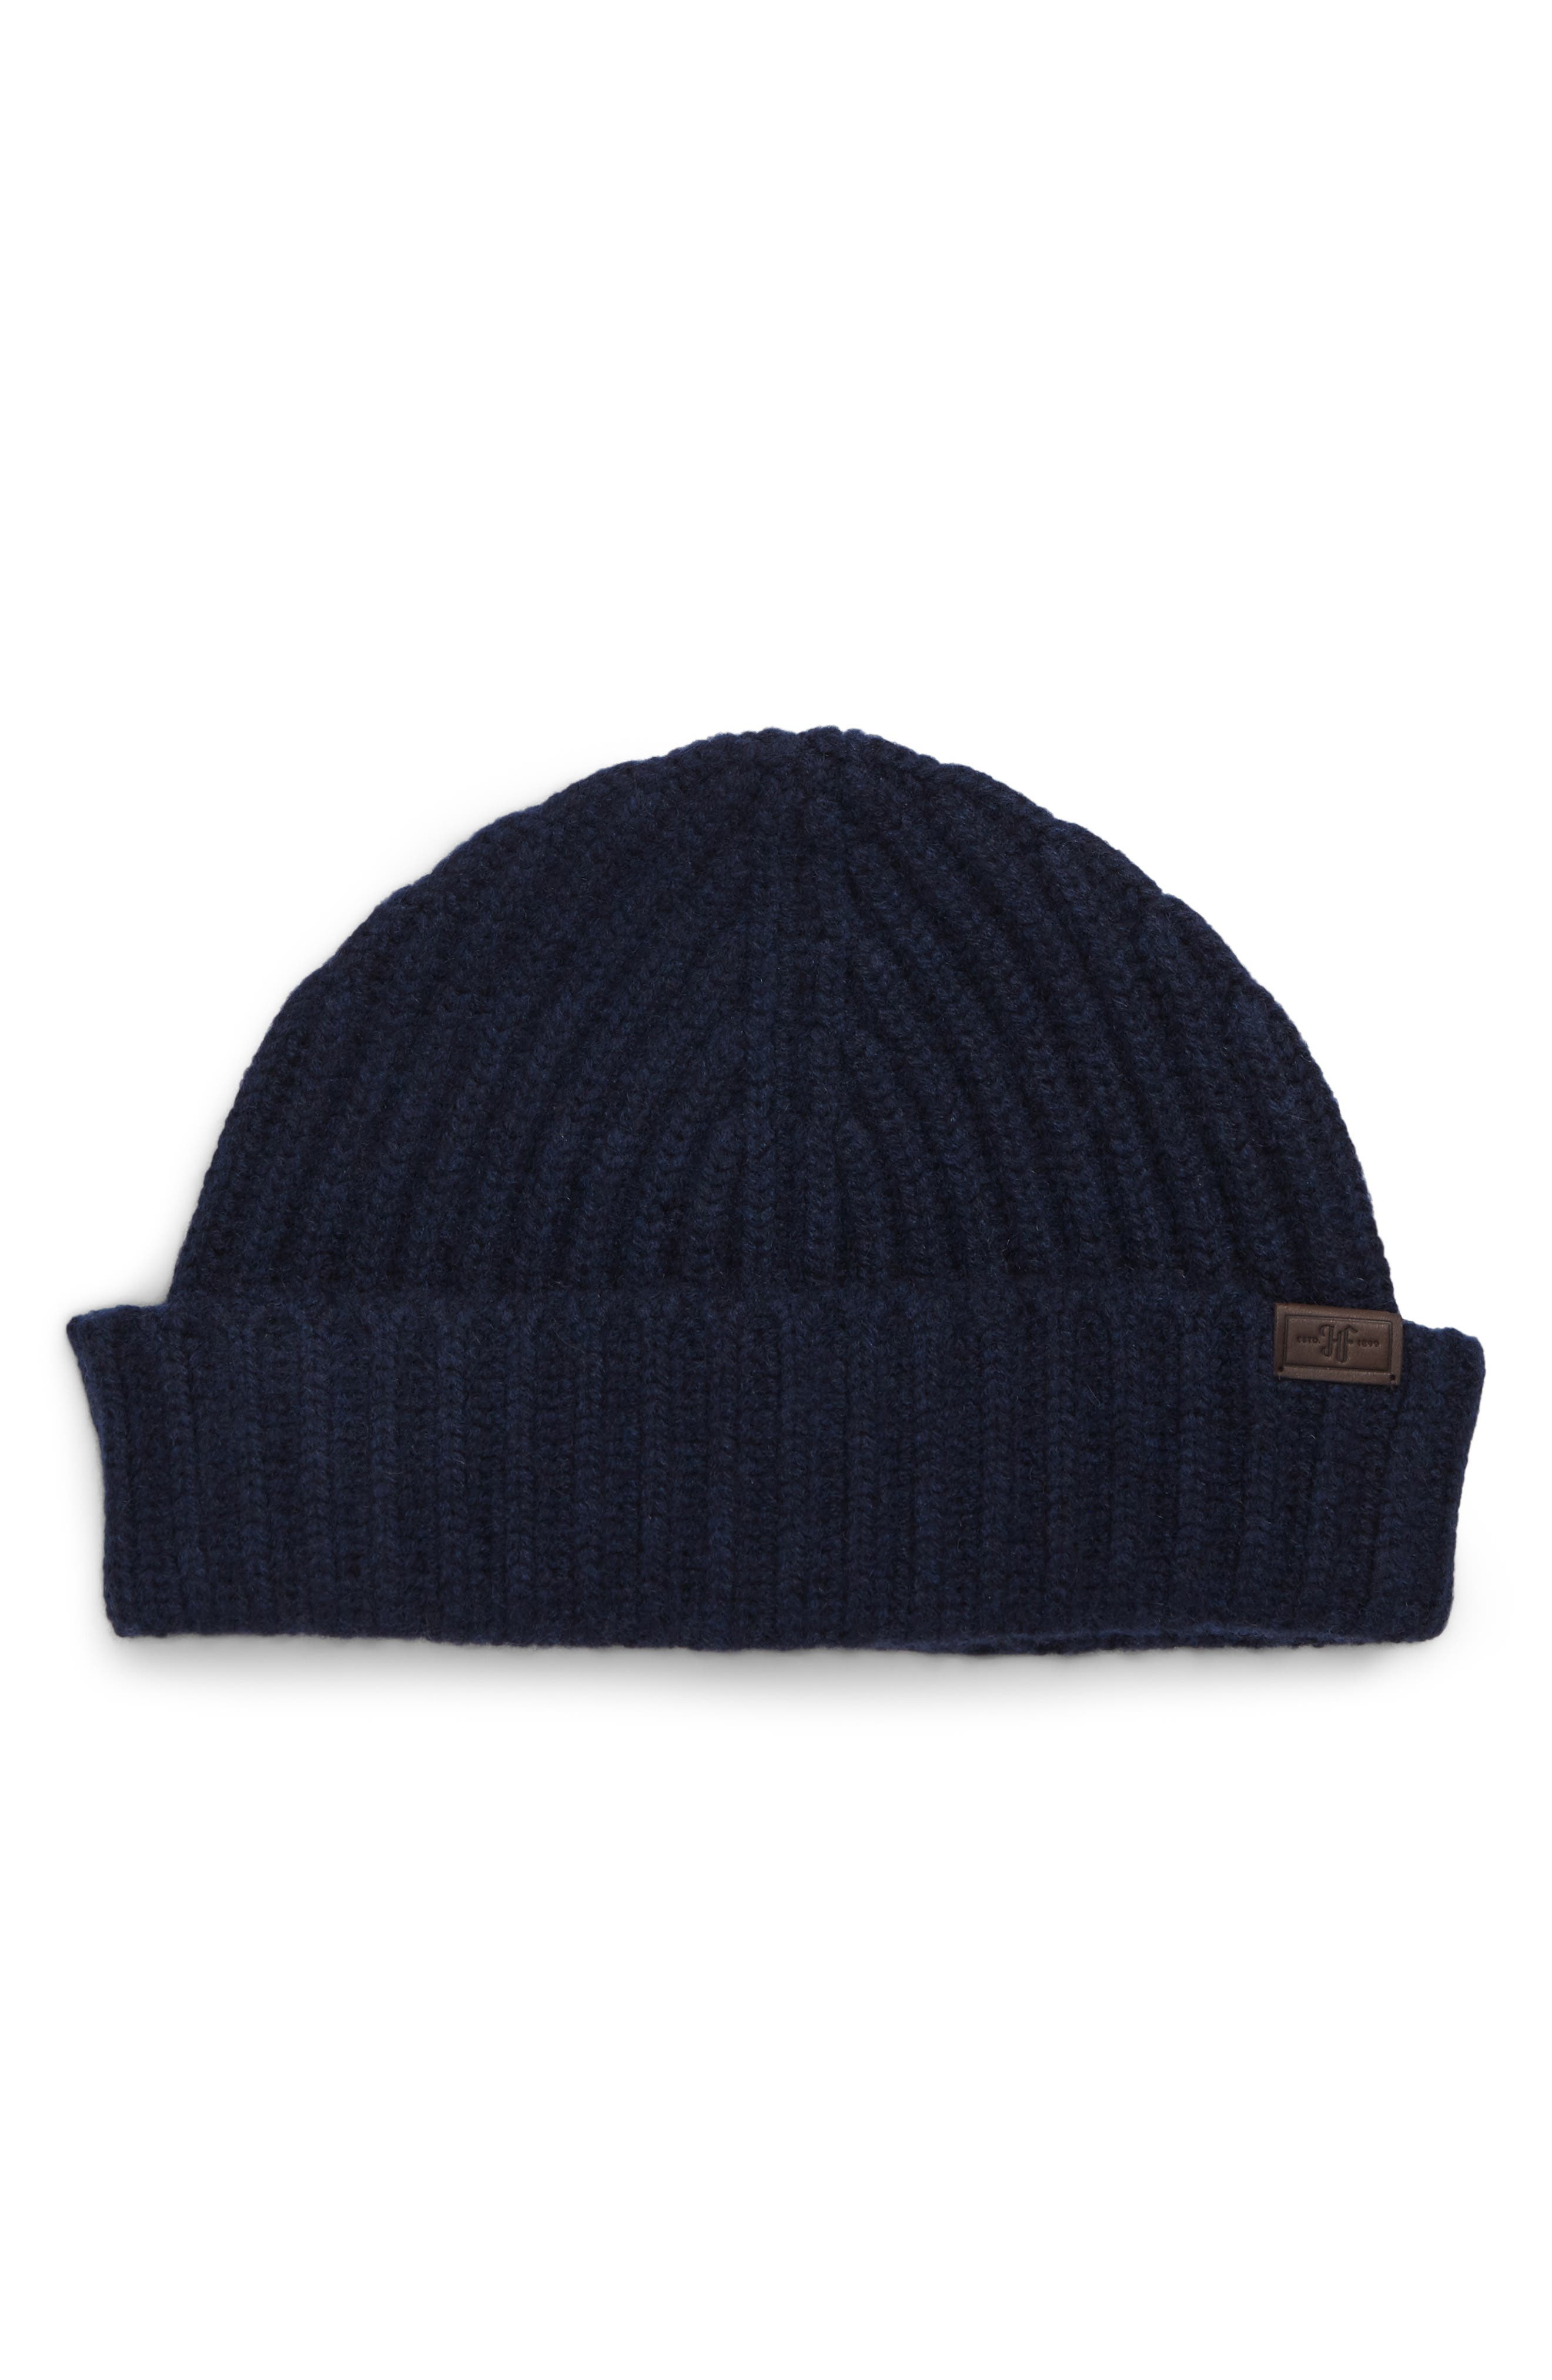 Cuffed Cashmere Beanie,                         Main,                         color, NAVY